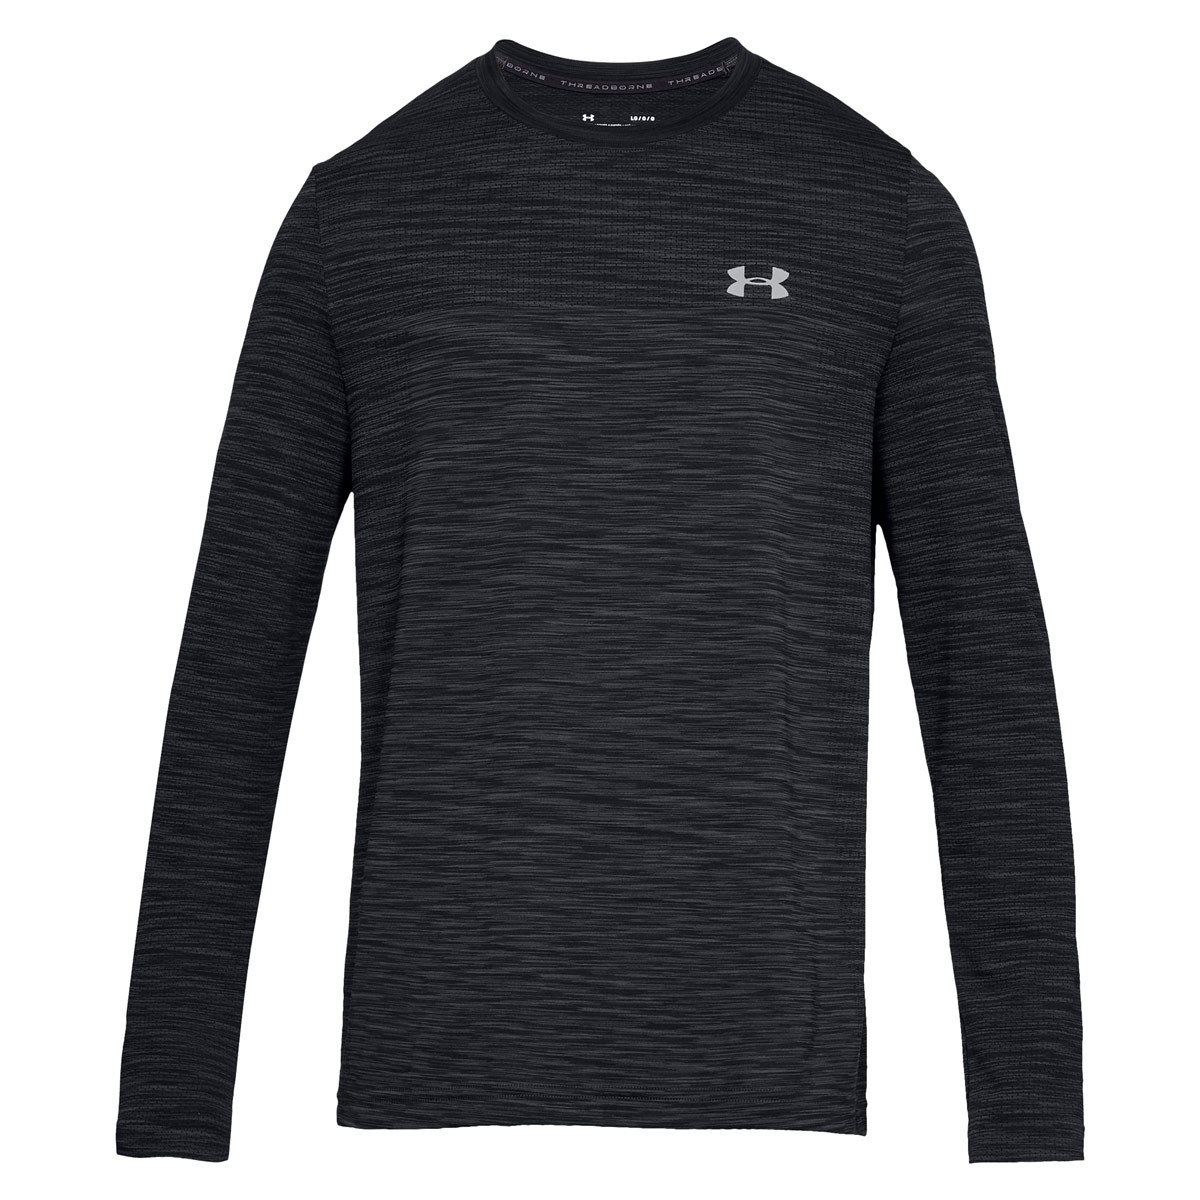 alto Deportes Kenia  Mens Black Under Armour Siphon Long Sleeved Tee Shirt   rugbystore